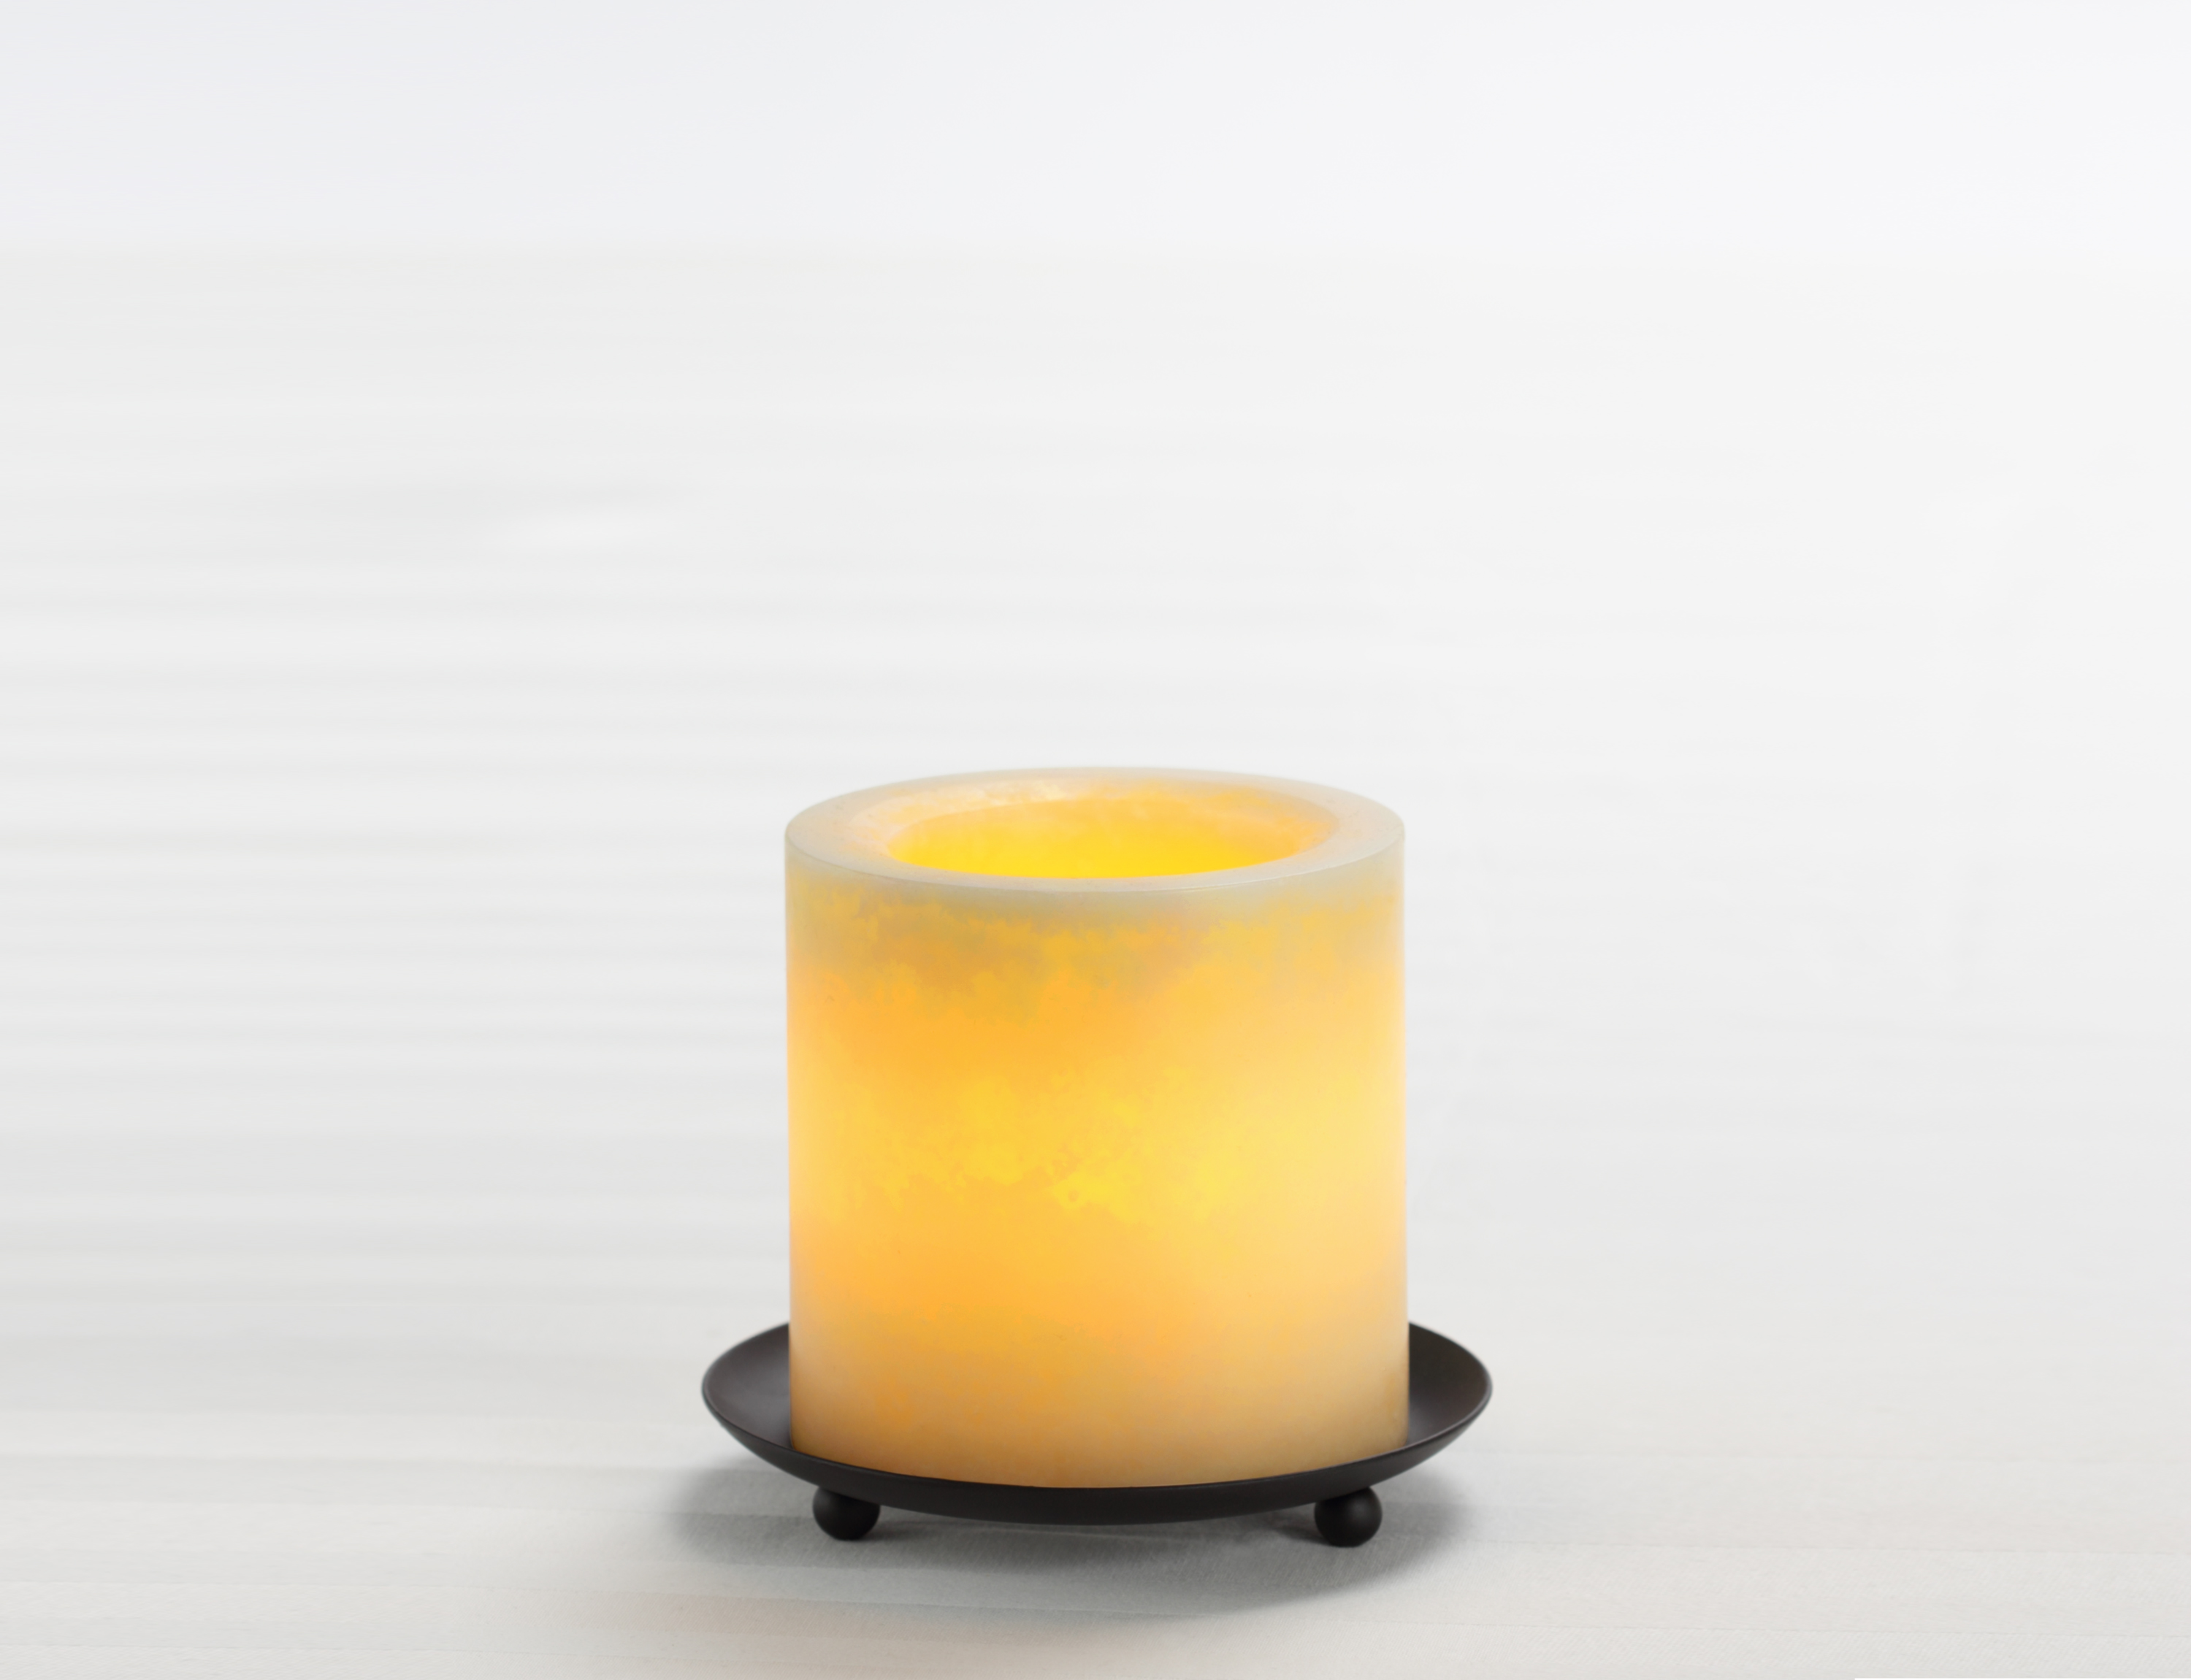 4 Inch Flameless Mottled Finish Pillar Candle with Timer - Cream Unscented